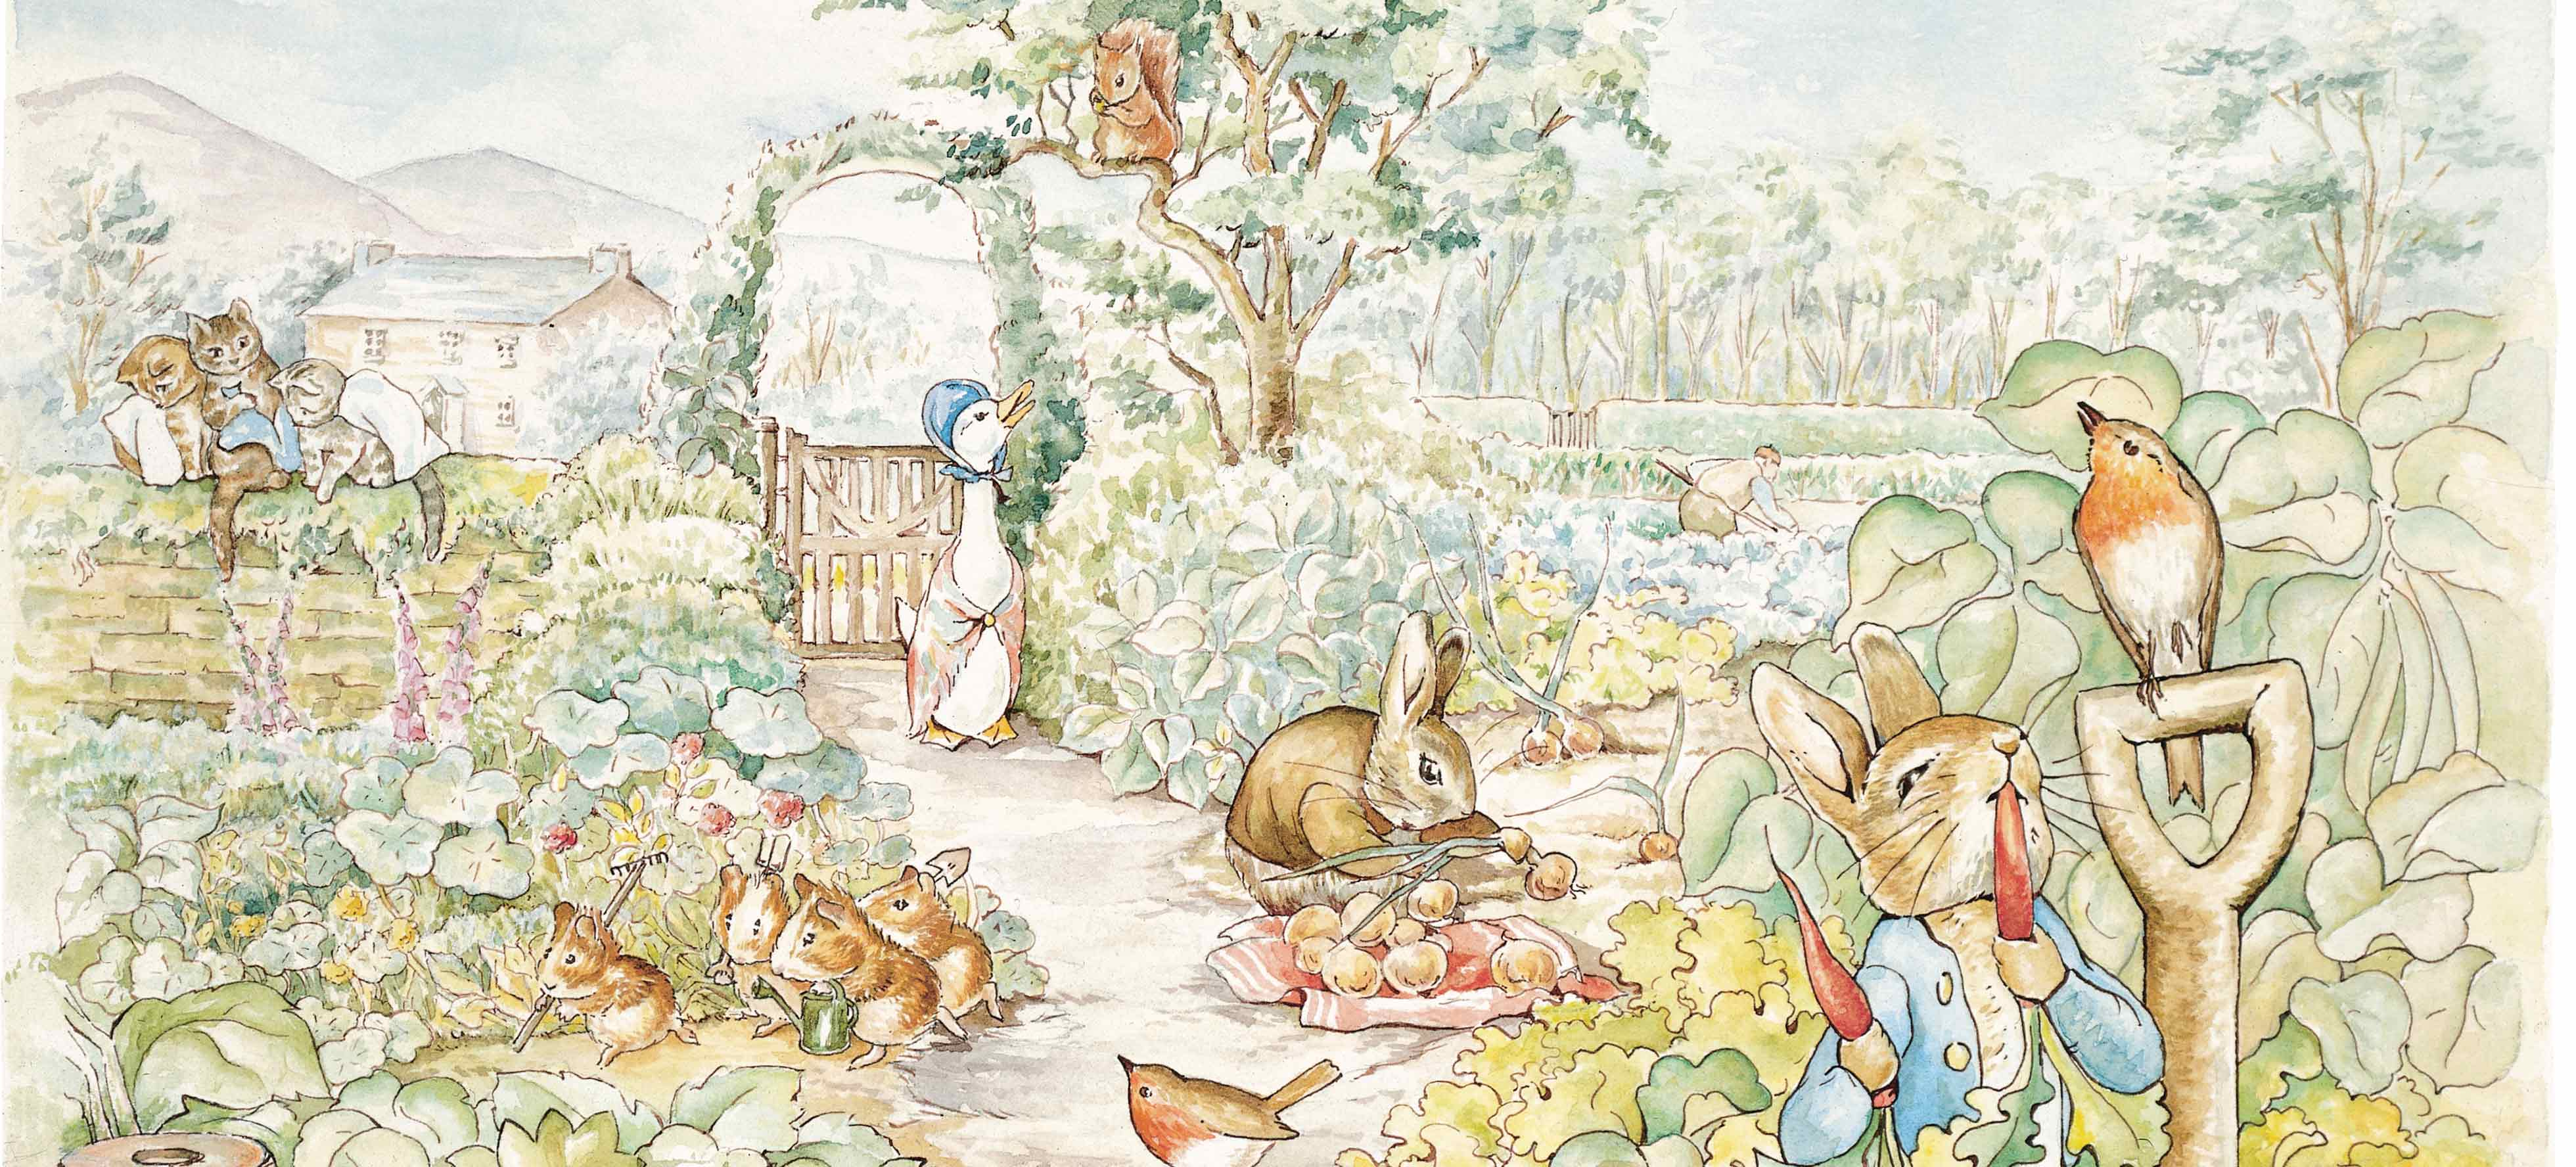 Header Image - Still the best selling app!! Peter Rabbit Free Version 4.0